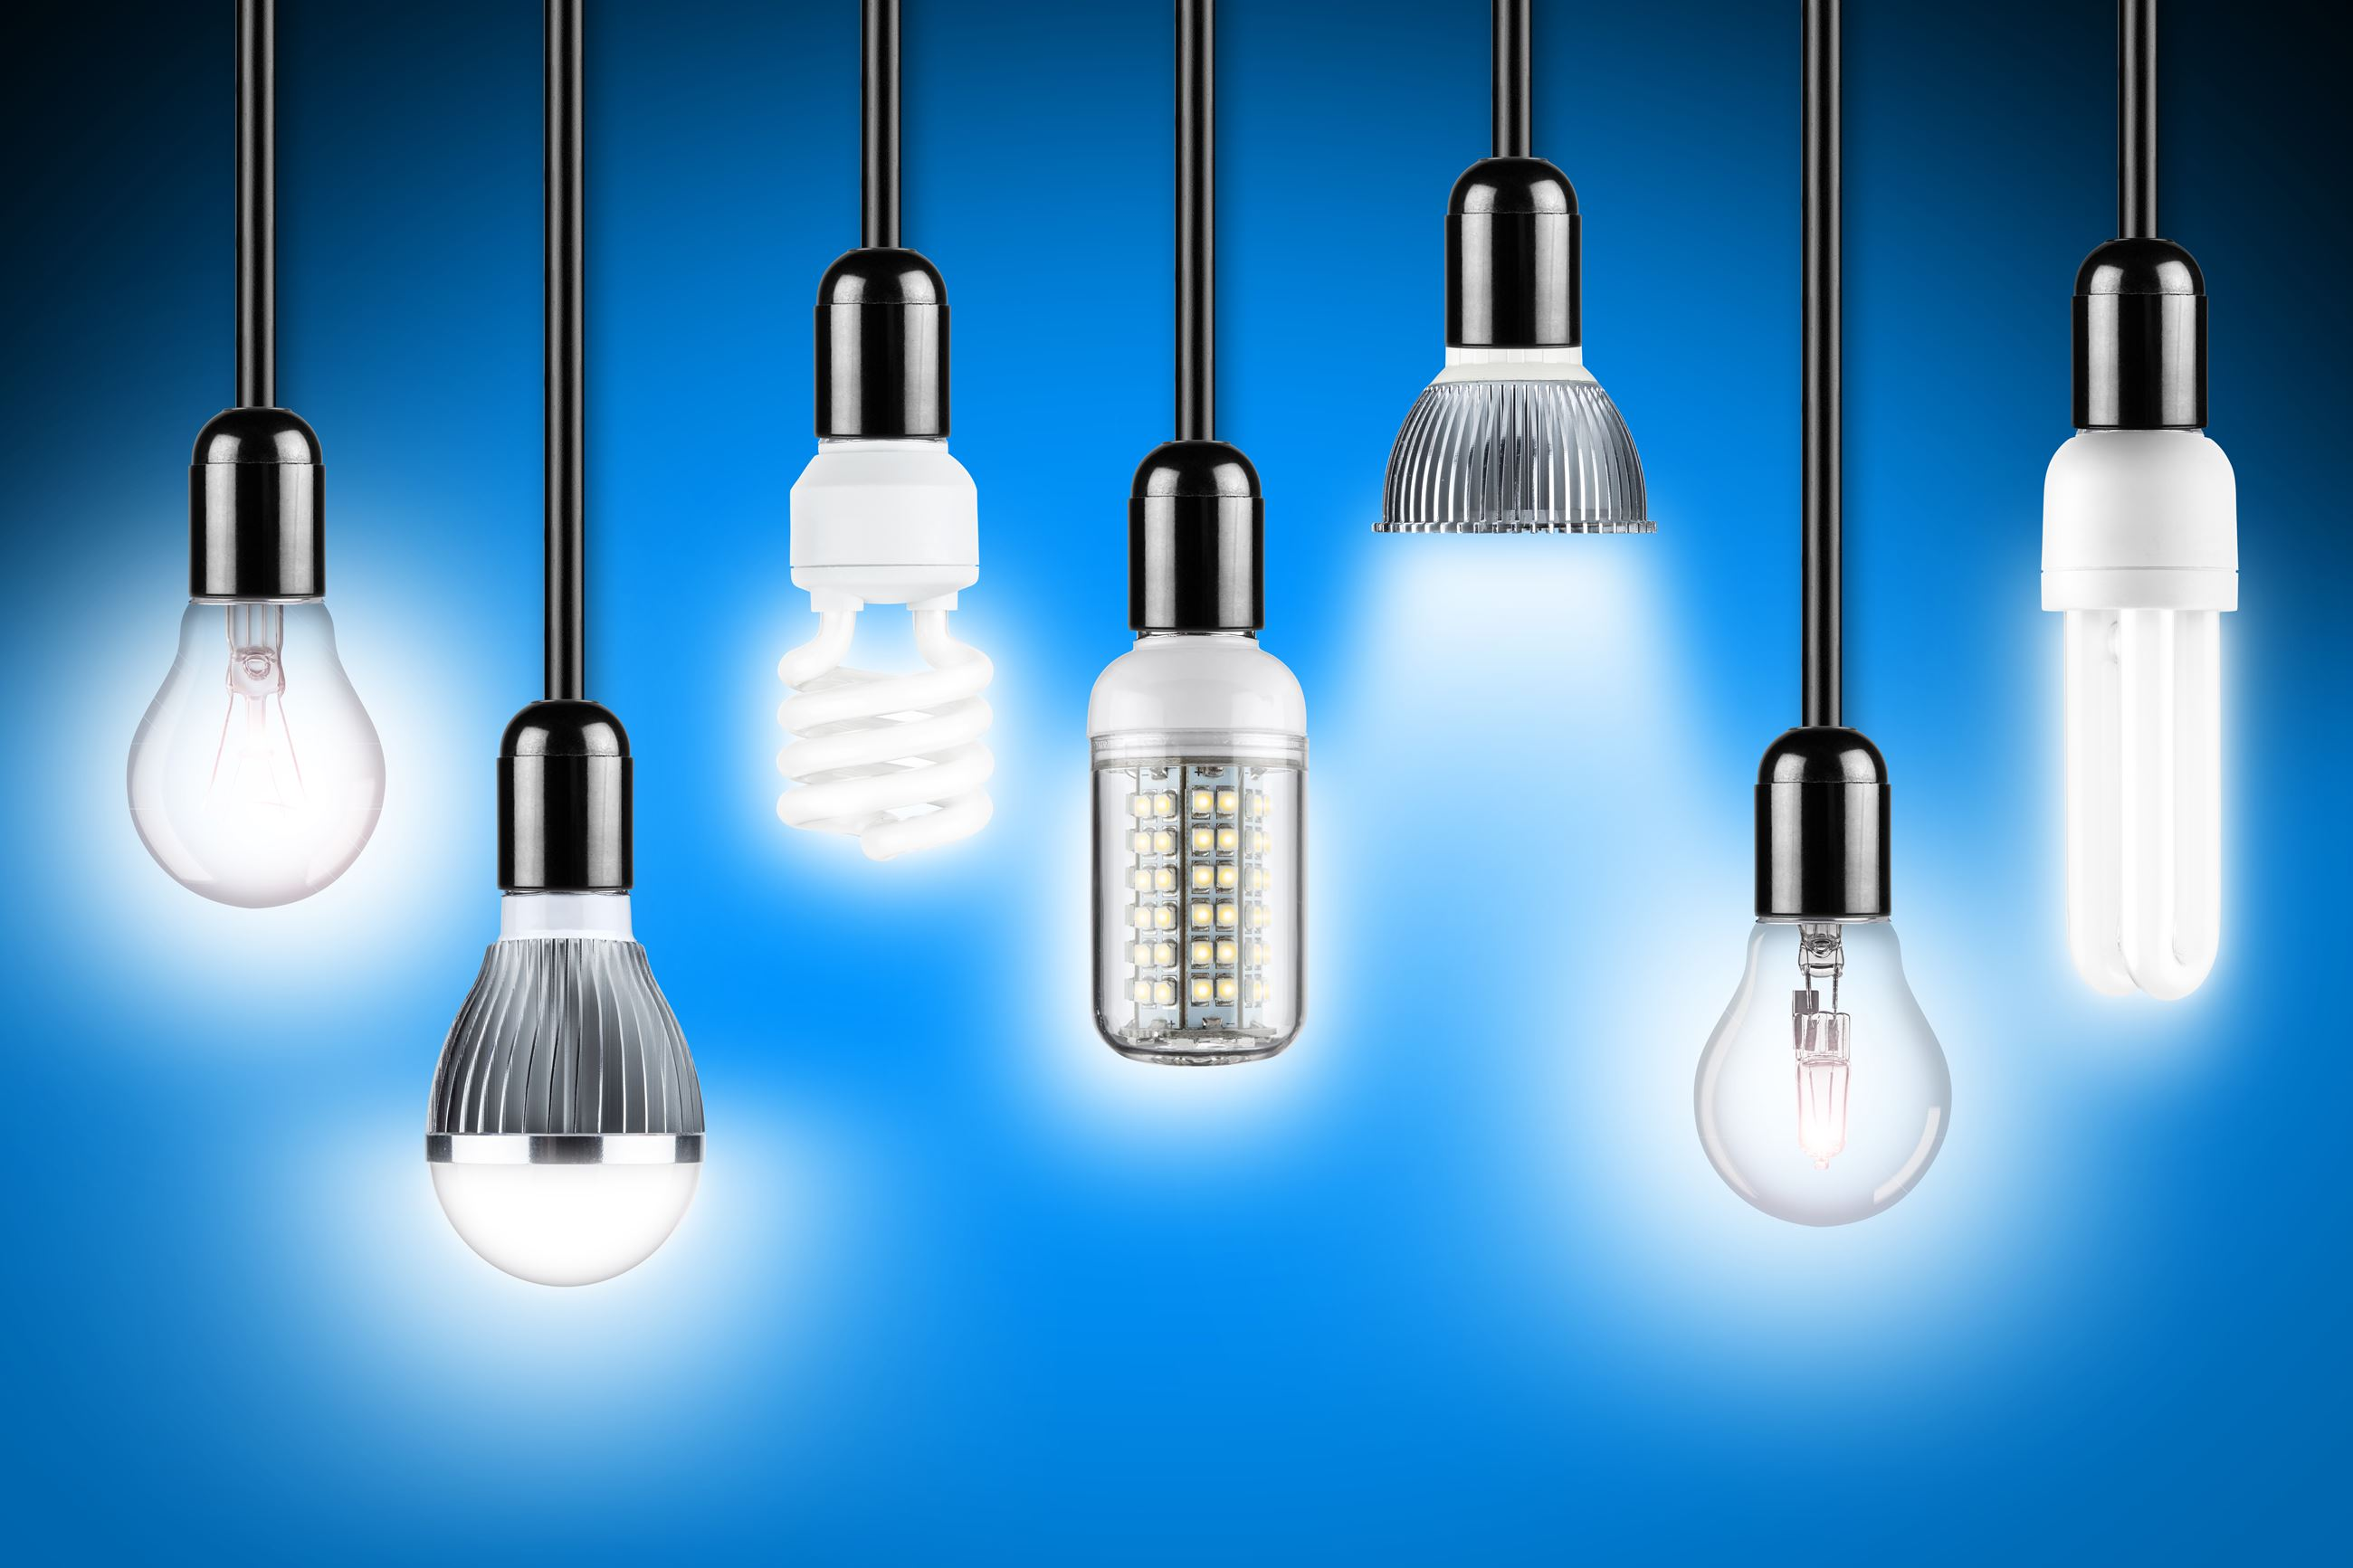 Guide to LED – The 3 generations of light bulbs